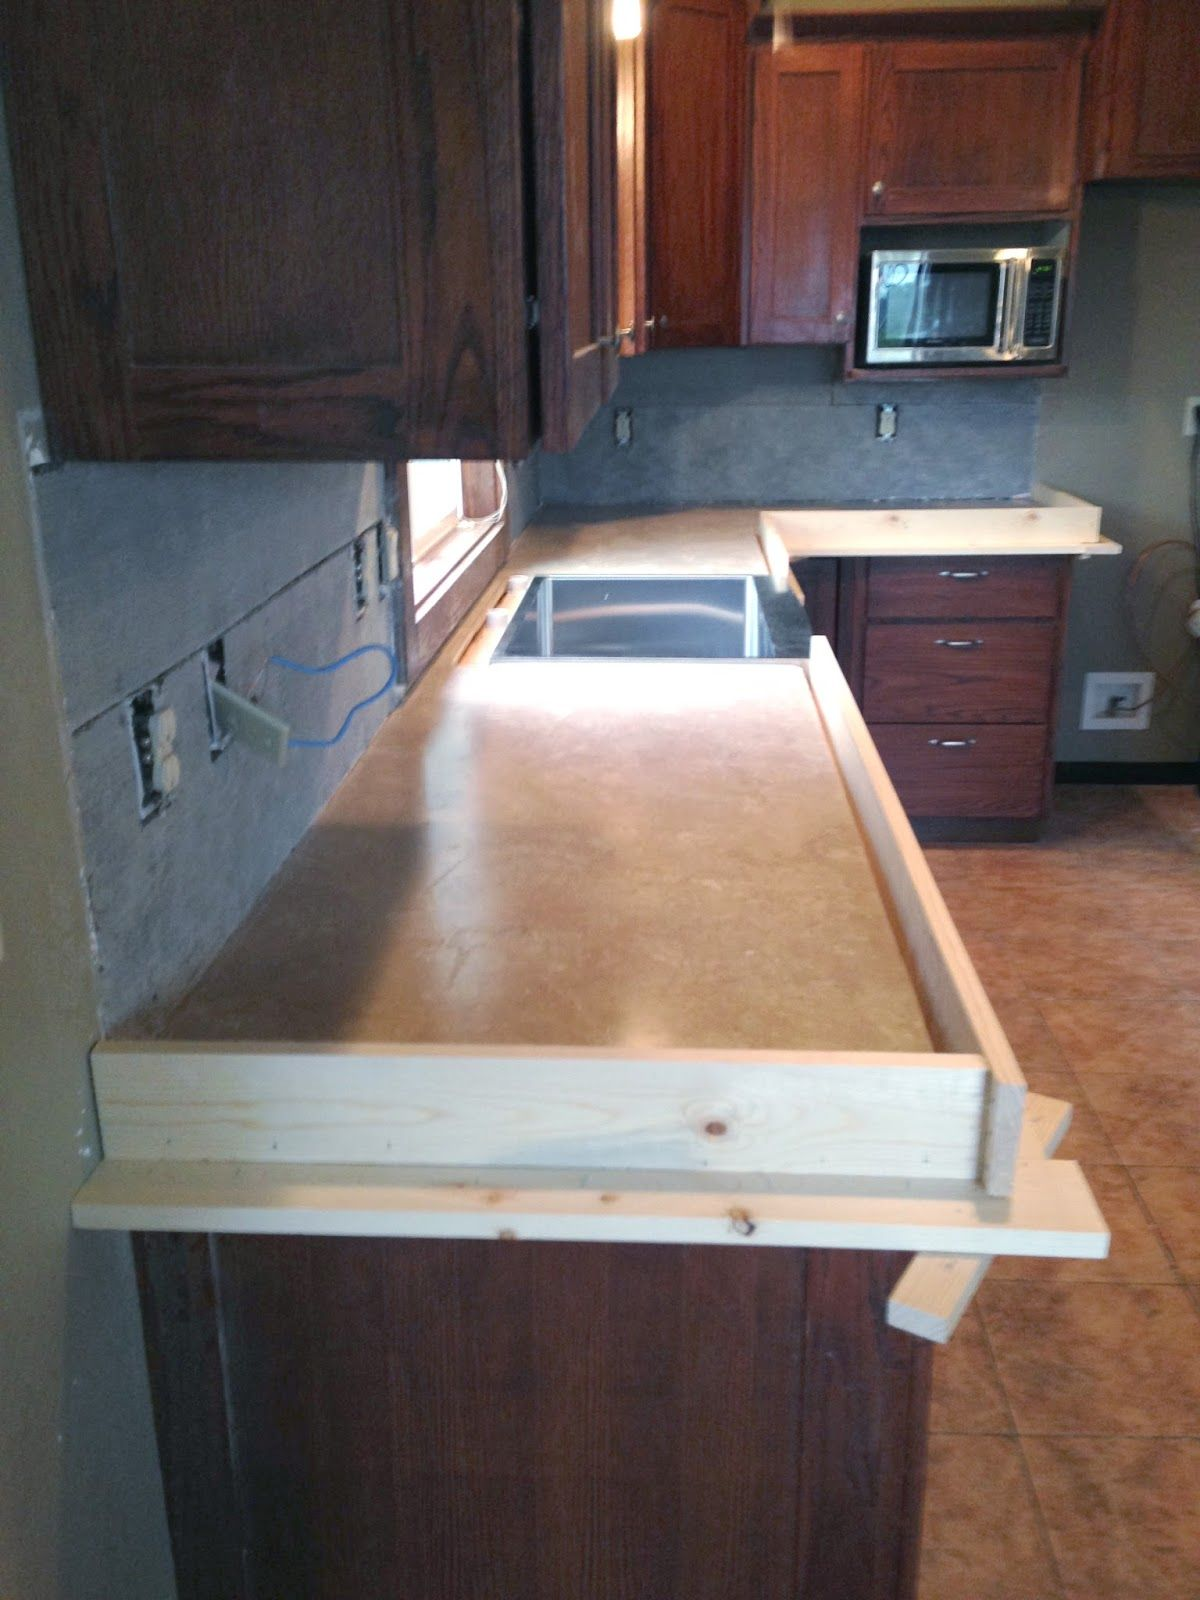 How To Build A Laminate Countertop Diy Concrete Counters Poured Over Laminate Dome Kitchen